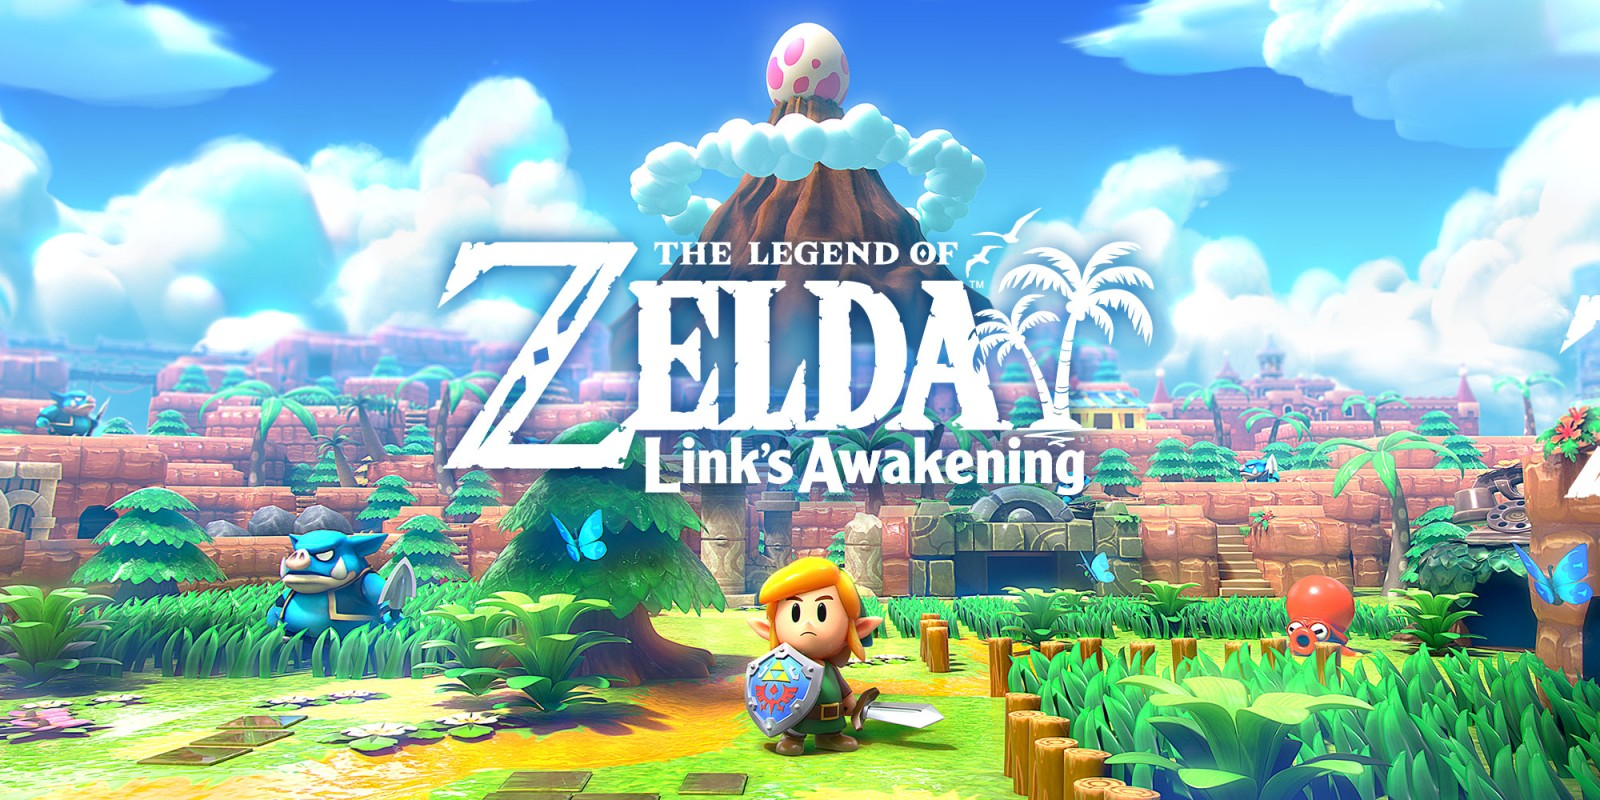 The Legend of Zelda: Link's Awakening | Nintendo Switch